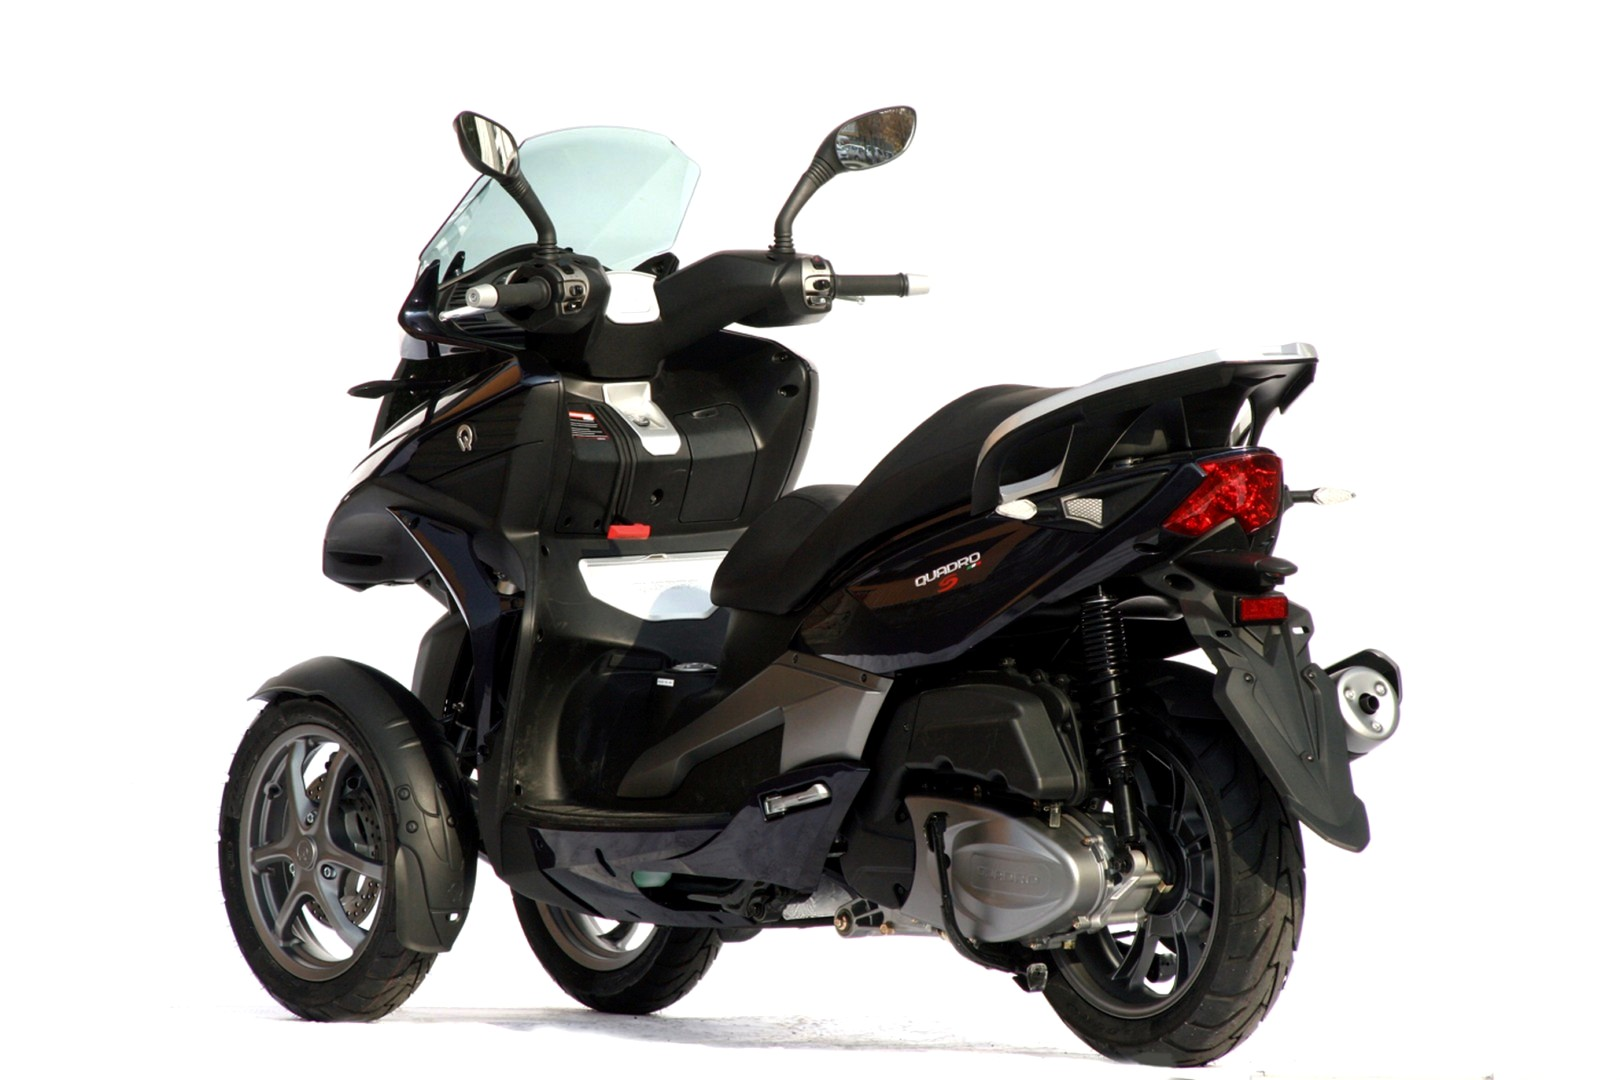 Porte paquet top case and cie Quadro-350s-the-new-3-wheel-scooter_4